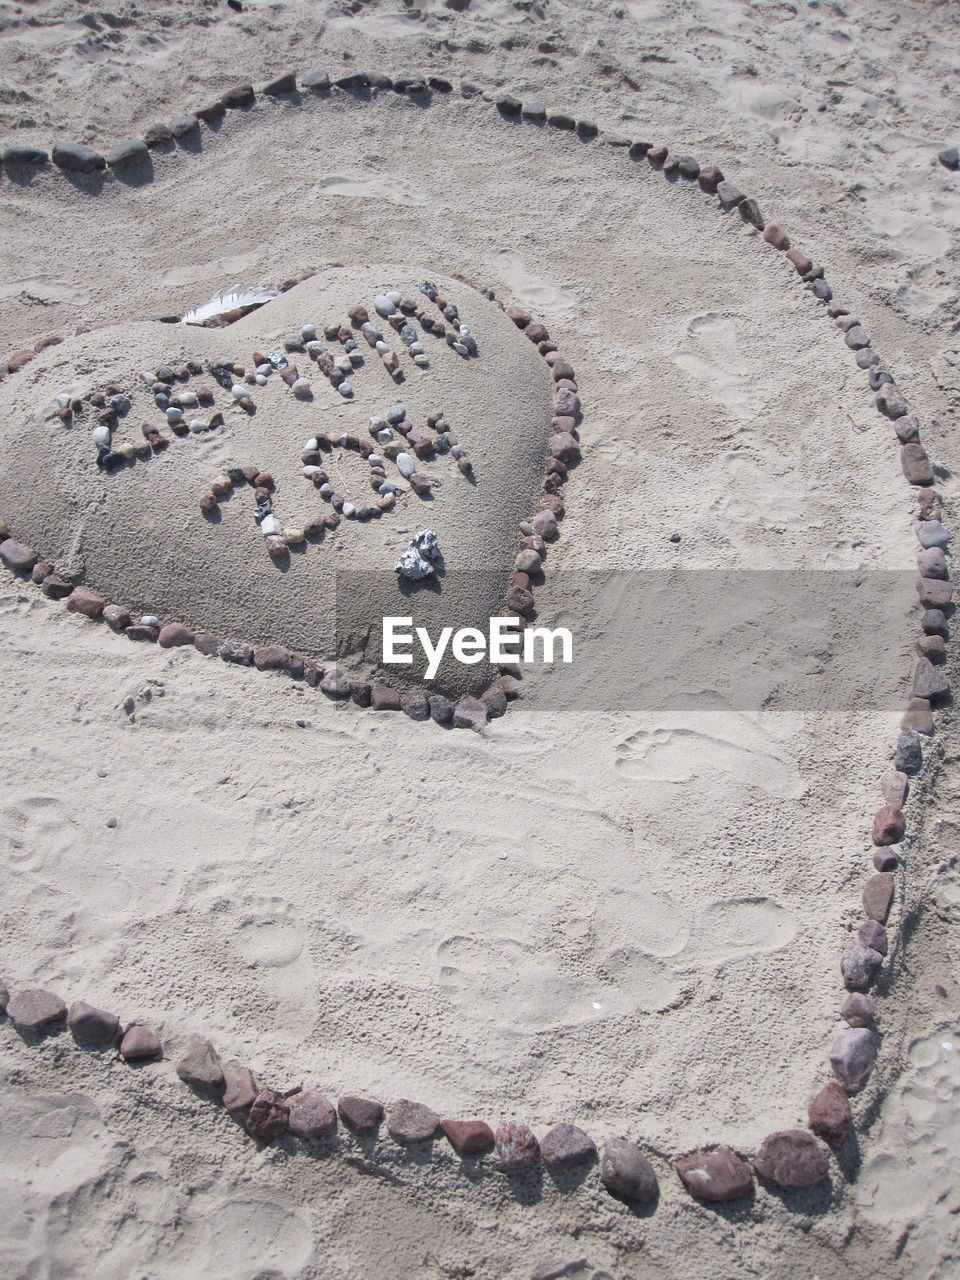 sand, heart shape, beach, no people, day, high angle view, footprint, outdoors, nature, close-up